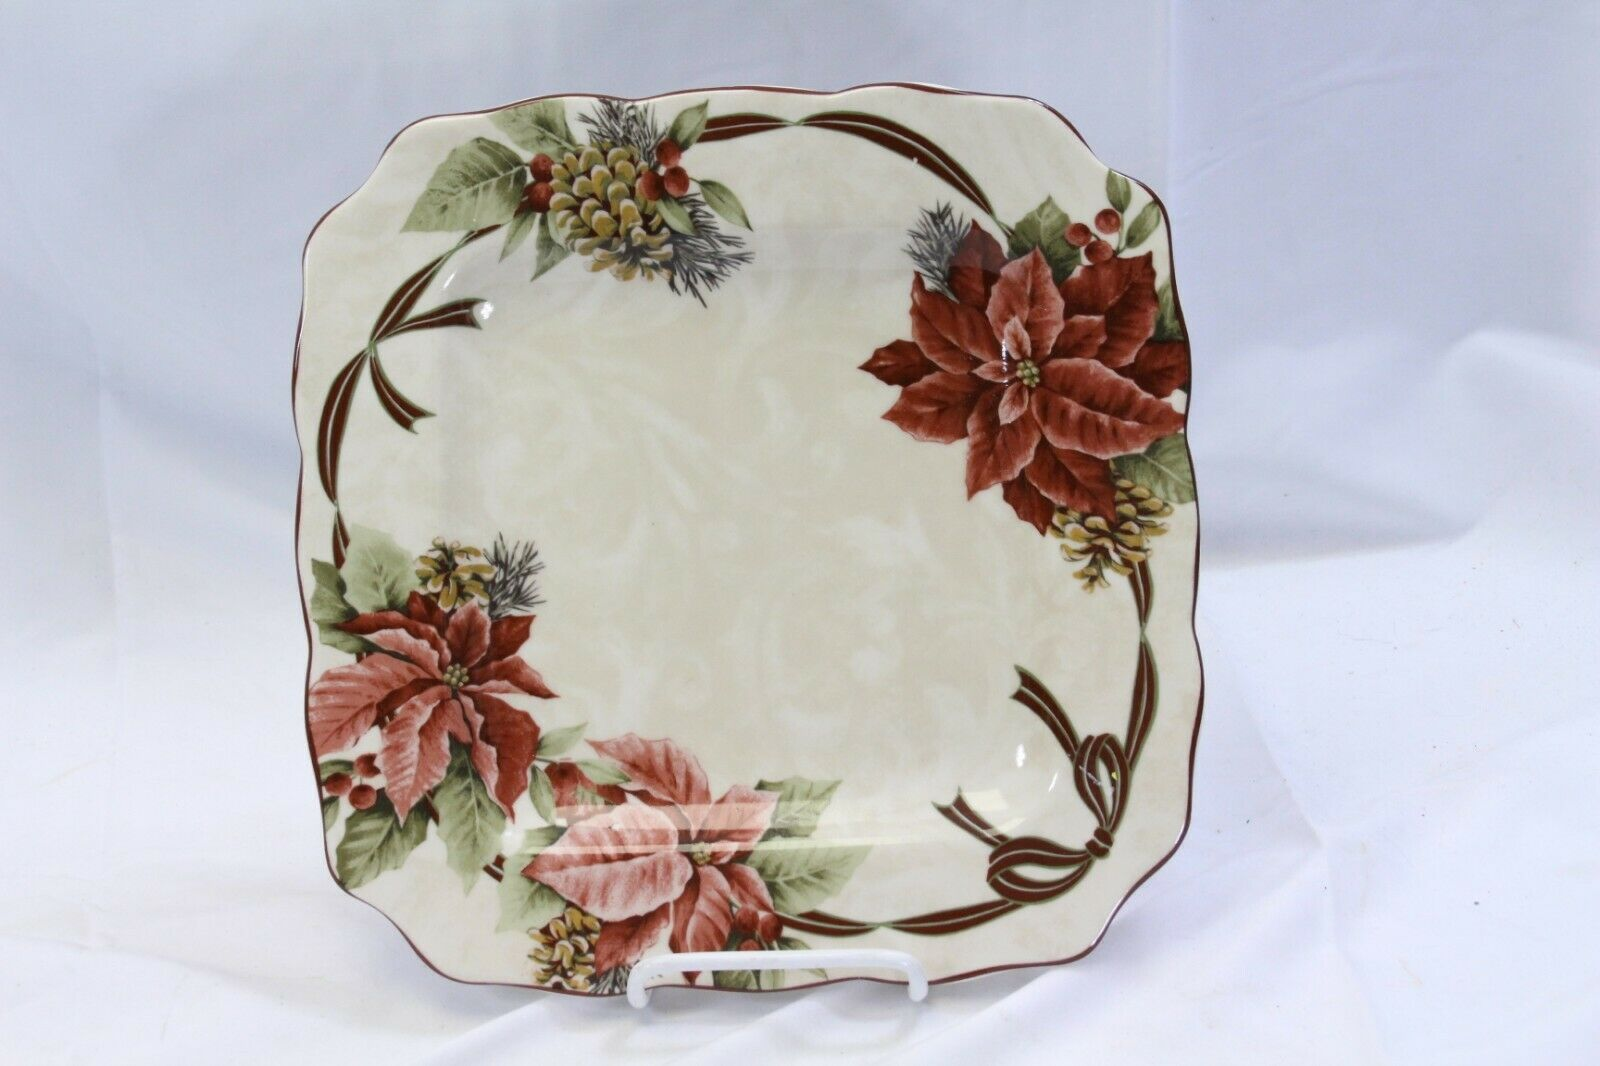 """222 Fifth Yuletide Celebration Poinsettia Square Dinner Plates 10.75"""" Lot of 6 image 2"""